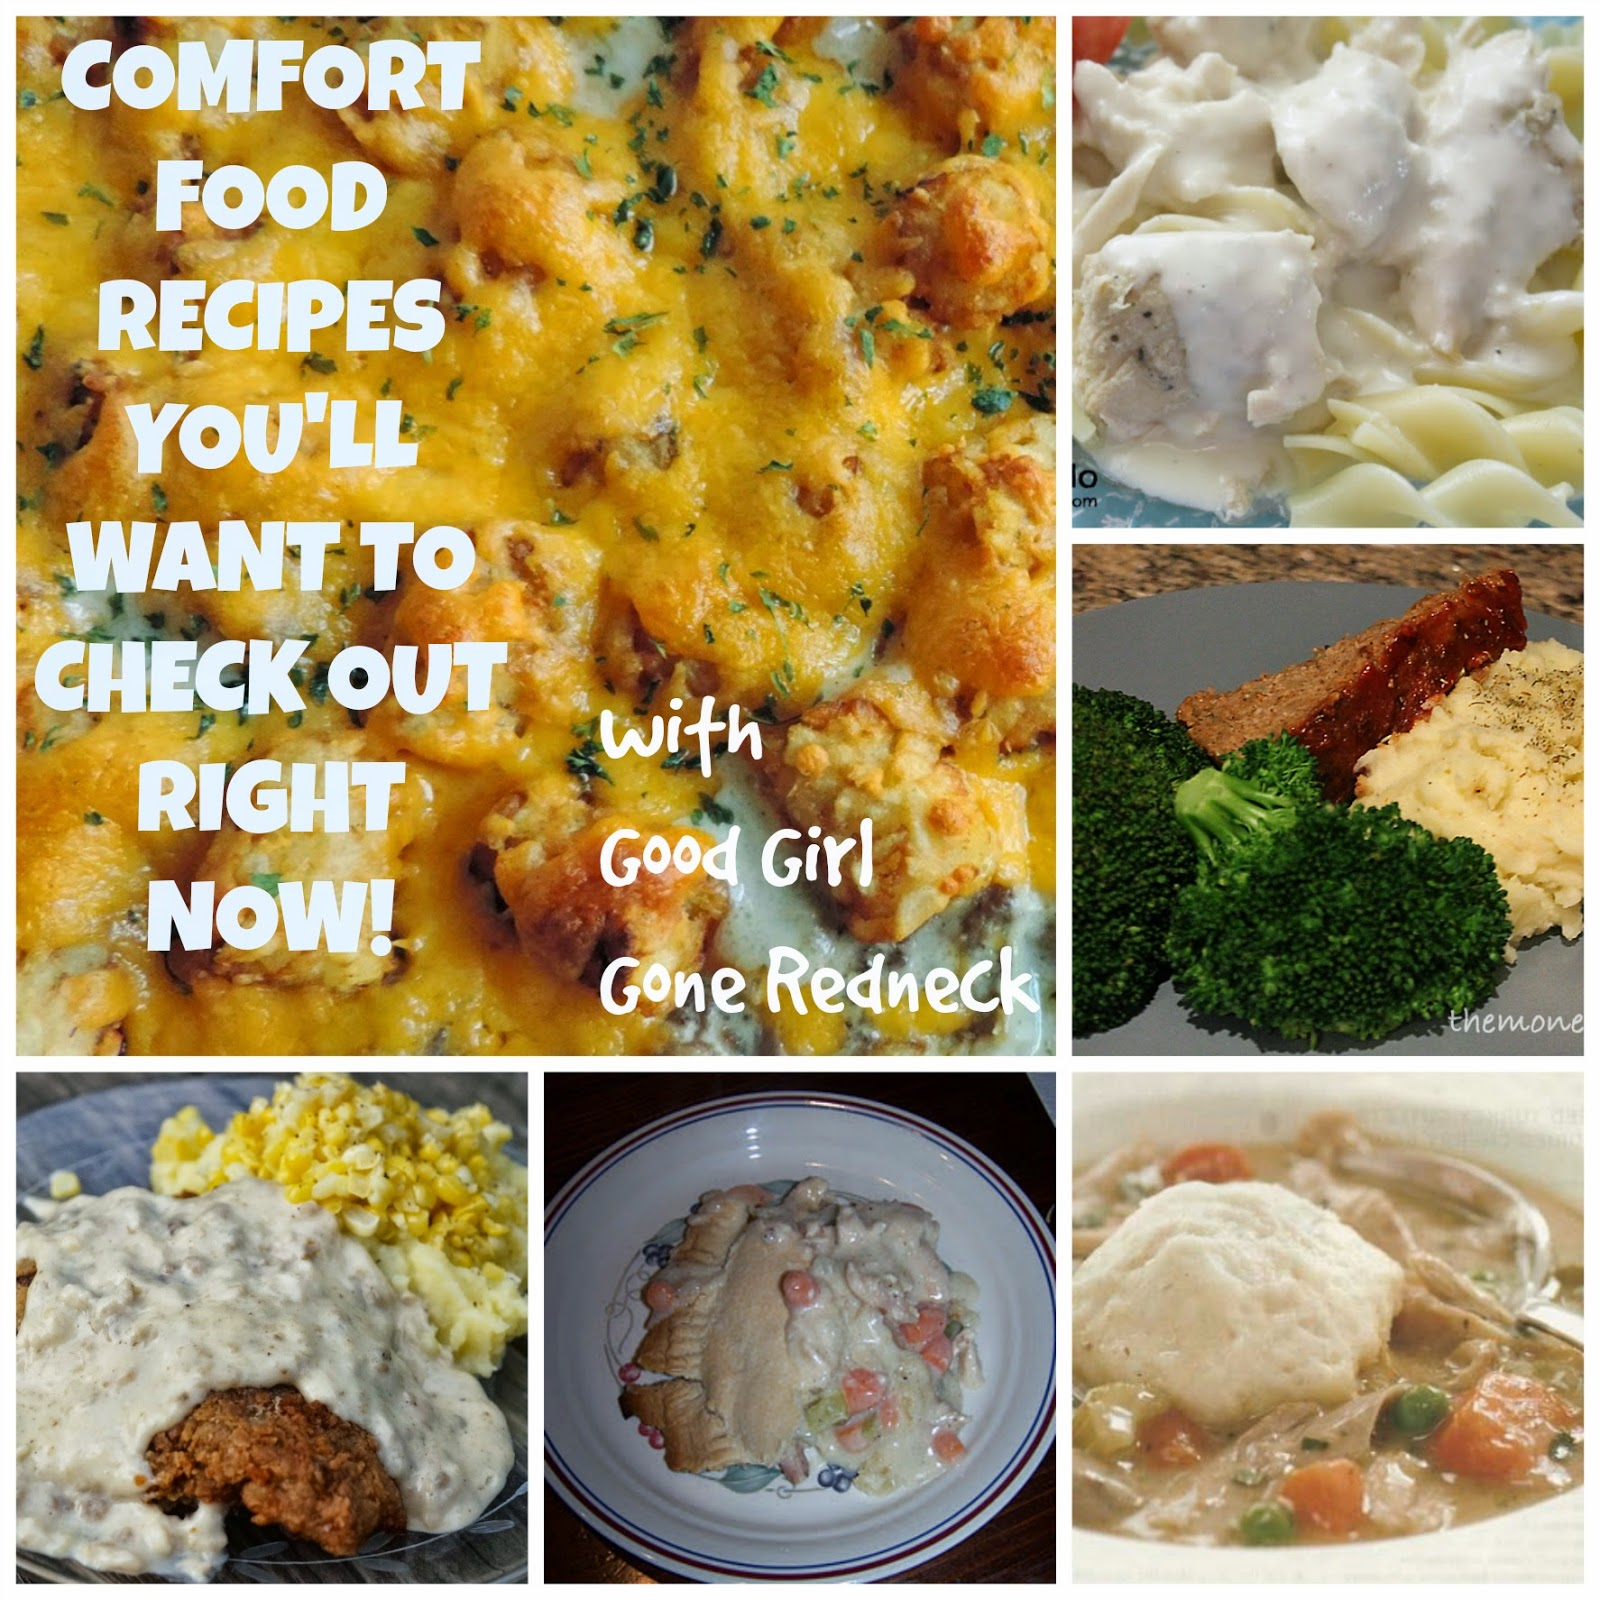 recipes, dinner, comfort, food, delicious, warming, comforting